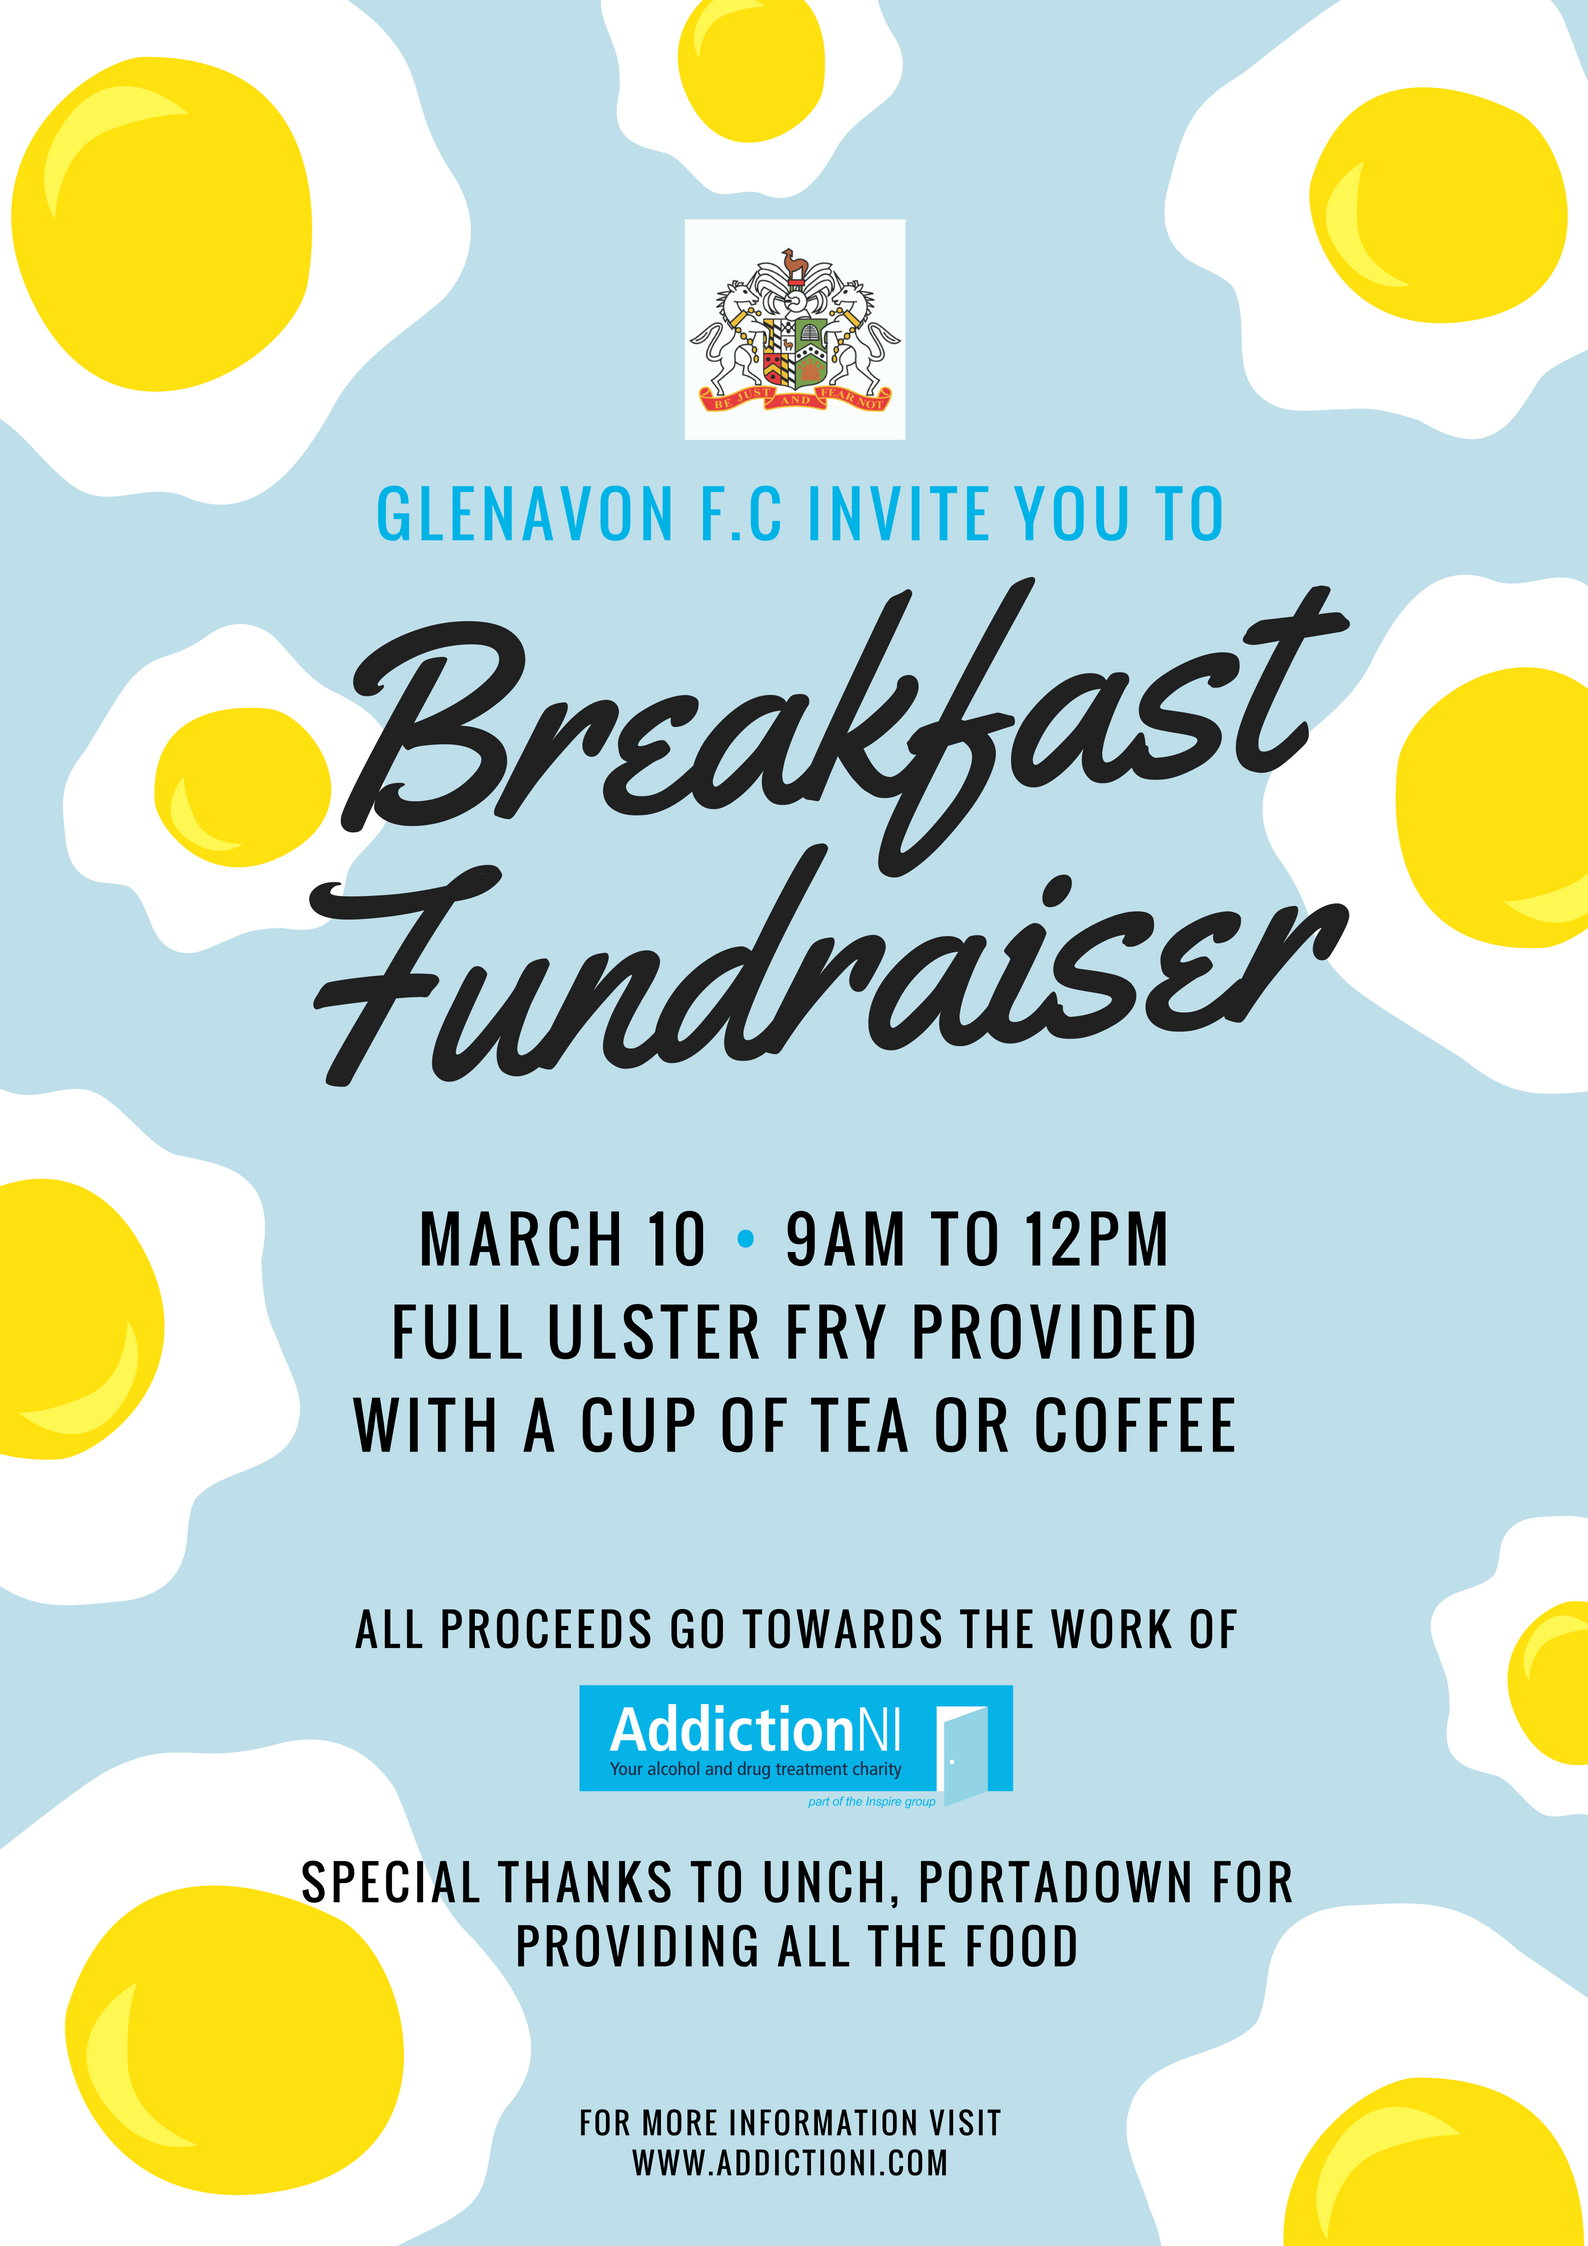 Breakfast Fundraiser this Saturday